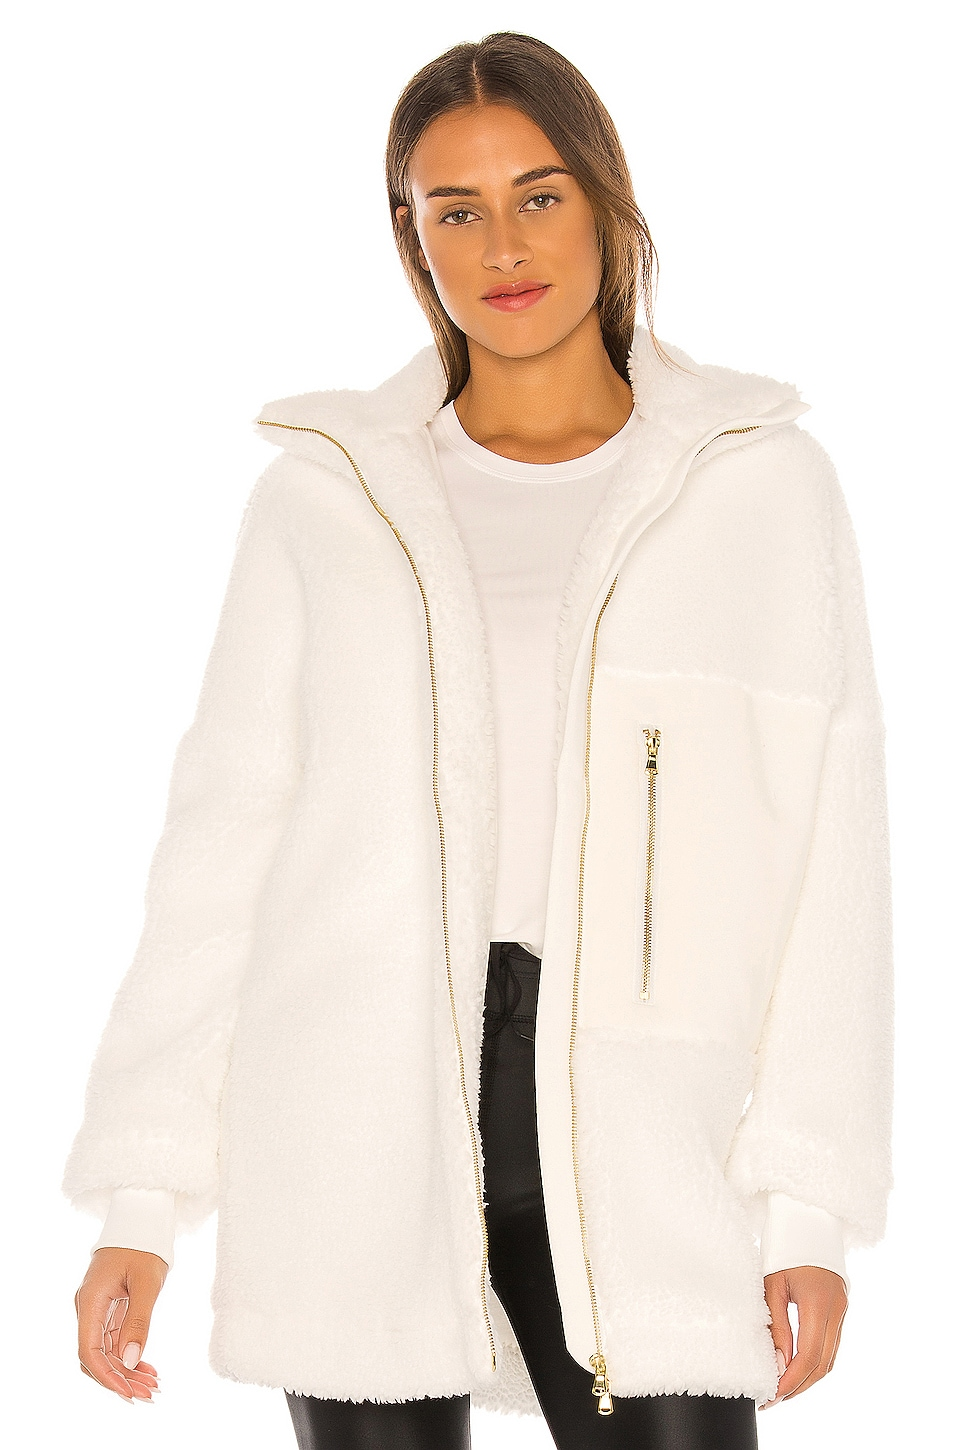 Varley Shelburn Jacket in White